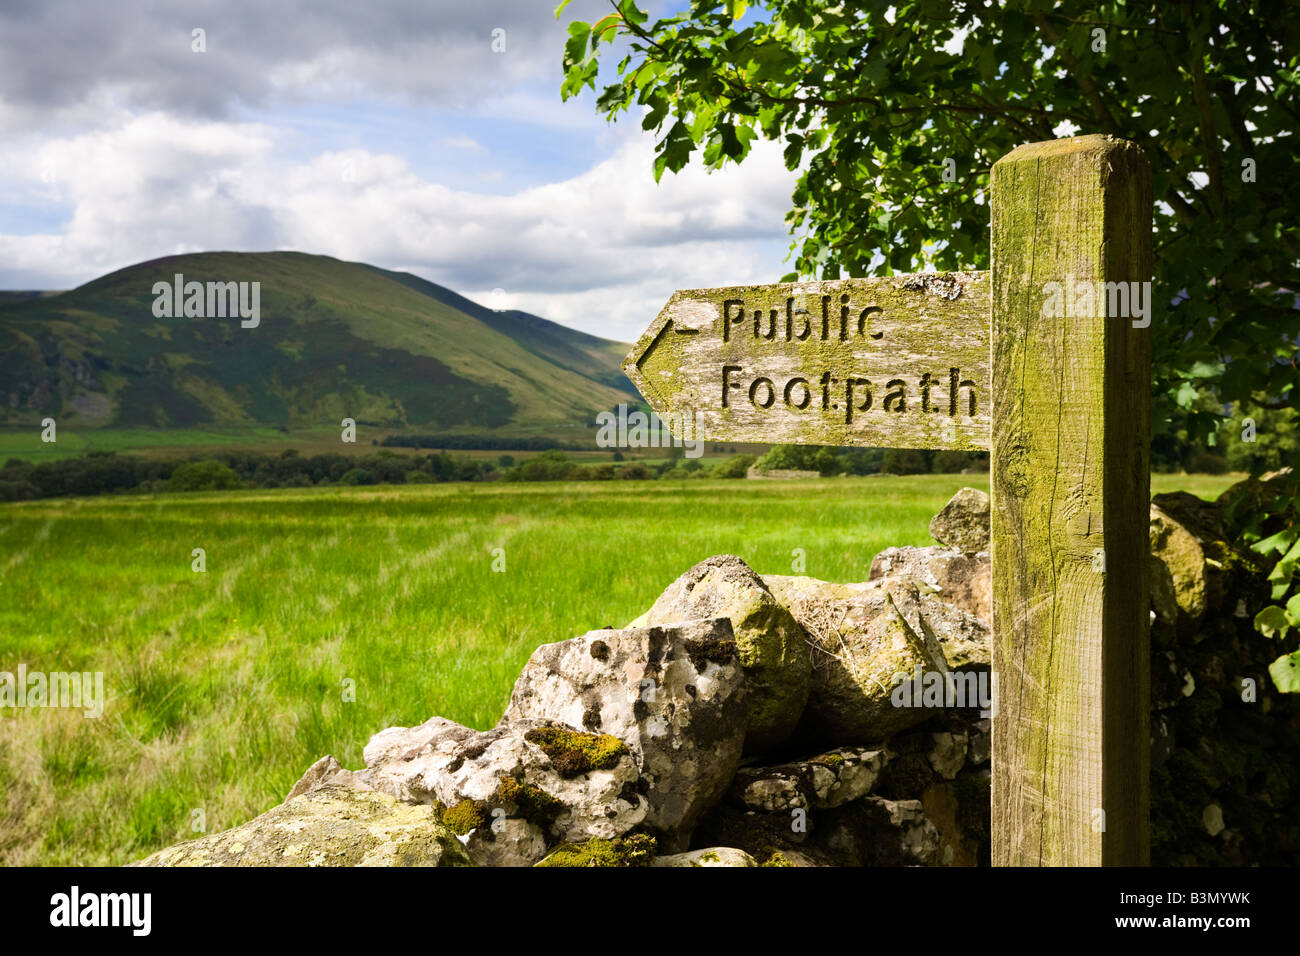 Wooden public footpath signpost sign and dry stone wall overlooking Lake District mountains in Cumbria, England, - Stock Image